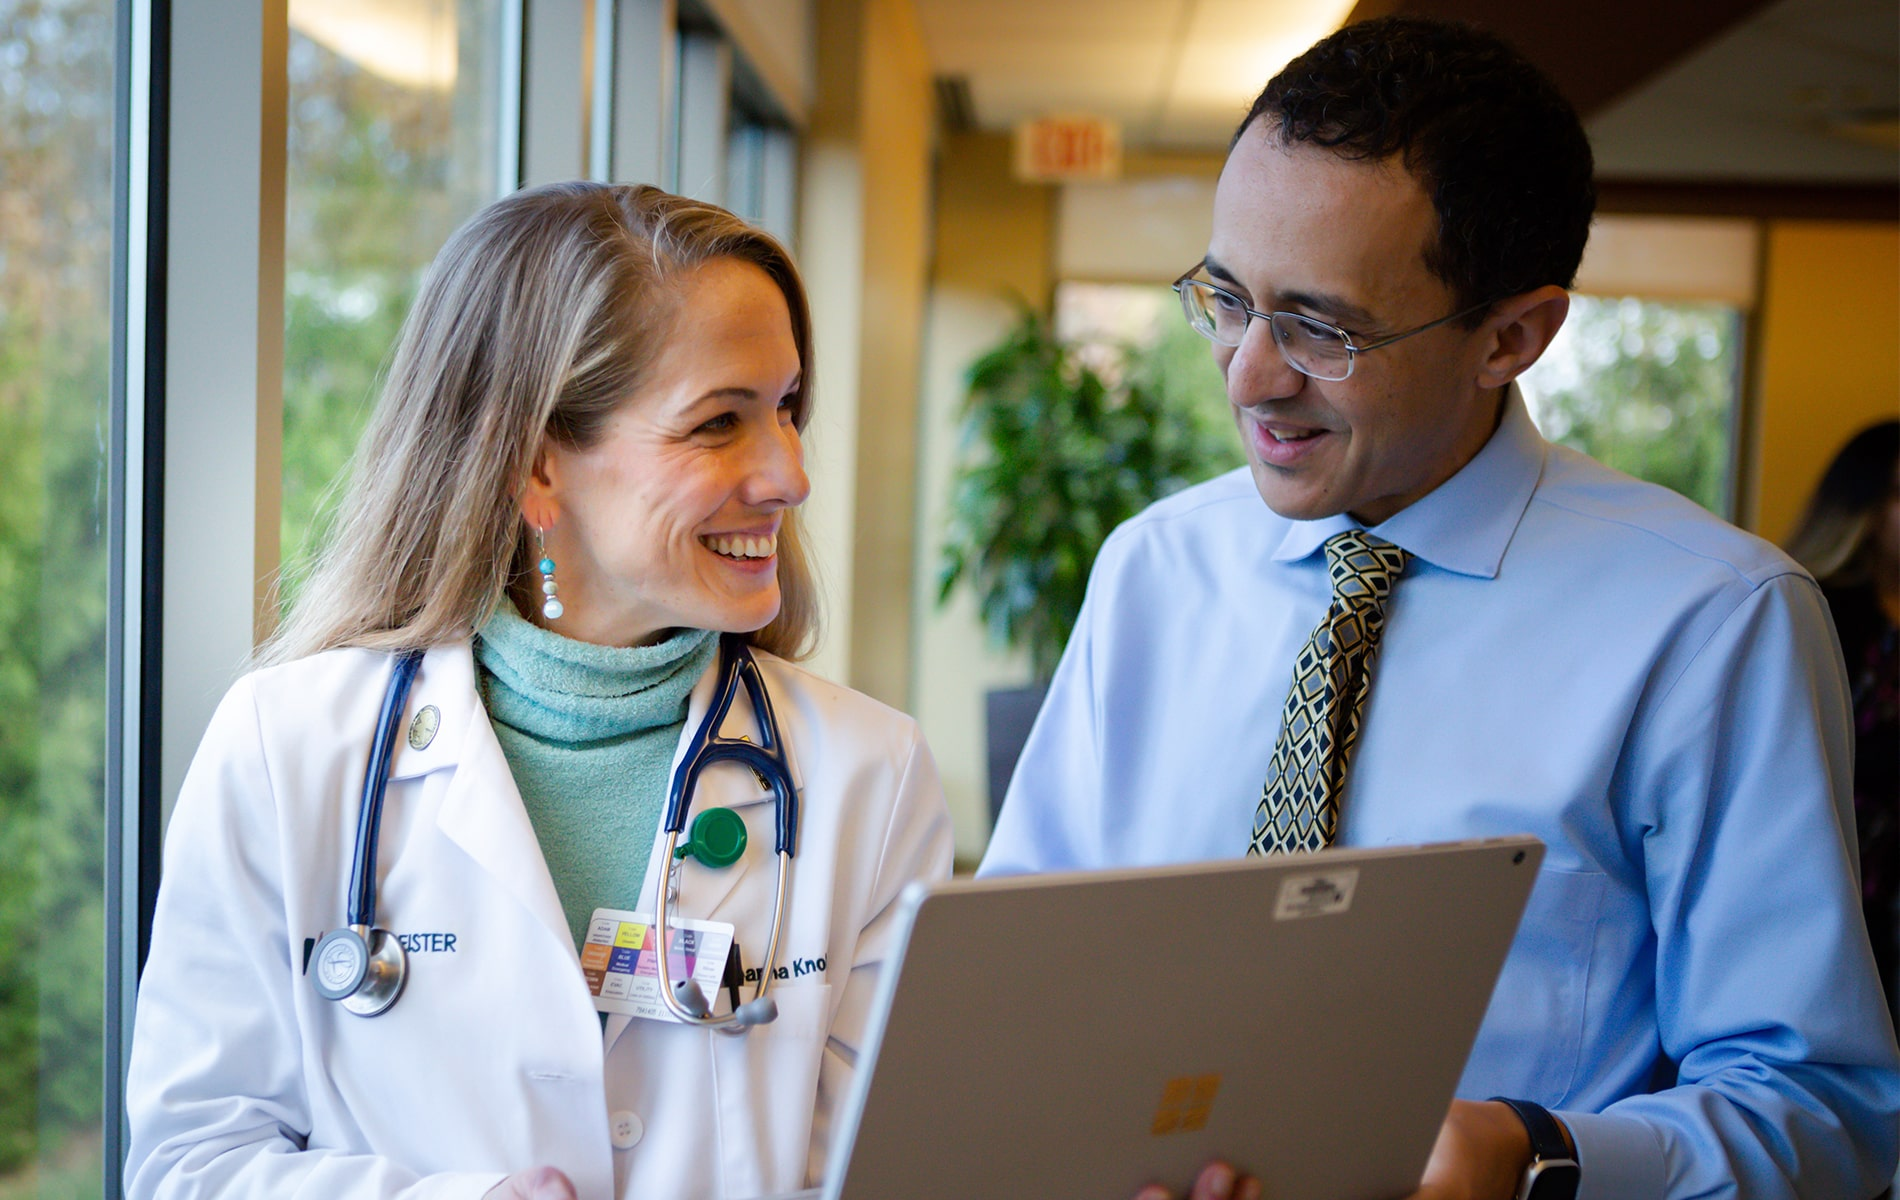 Dr. Knoble and Dr. Mikhail smiling while holding a laptop.